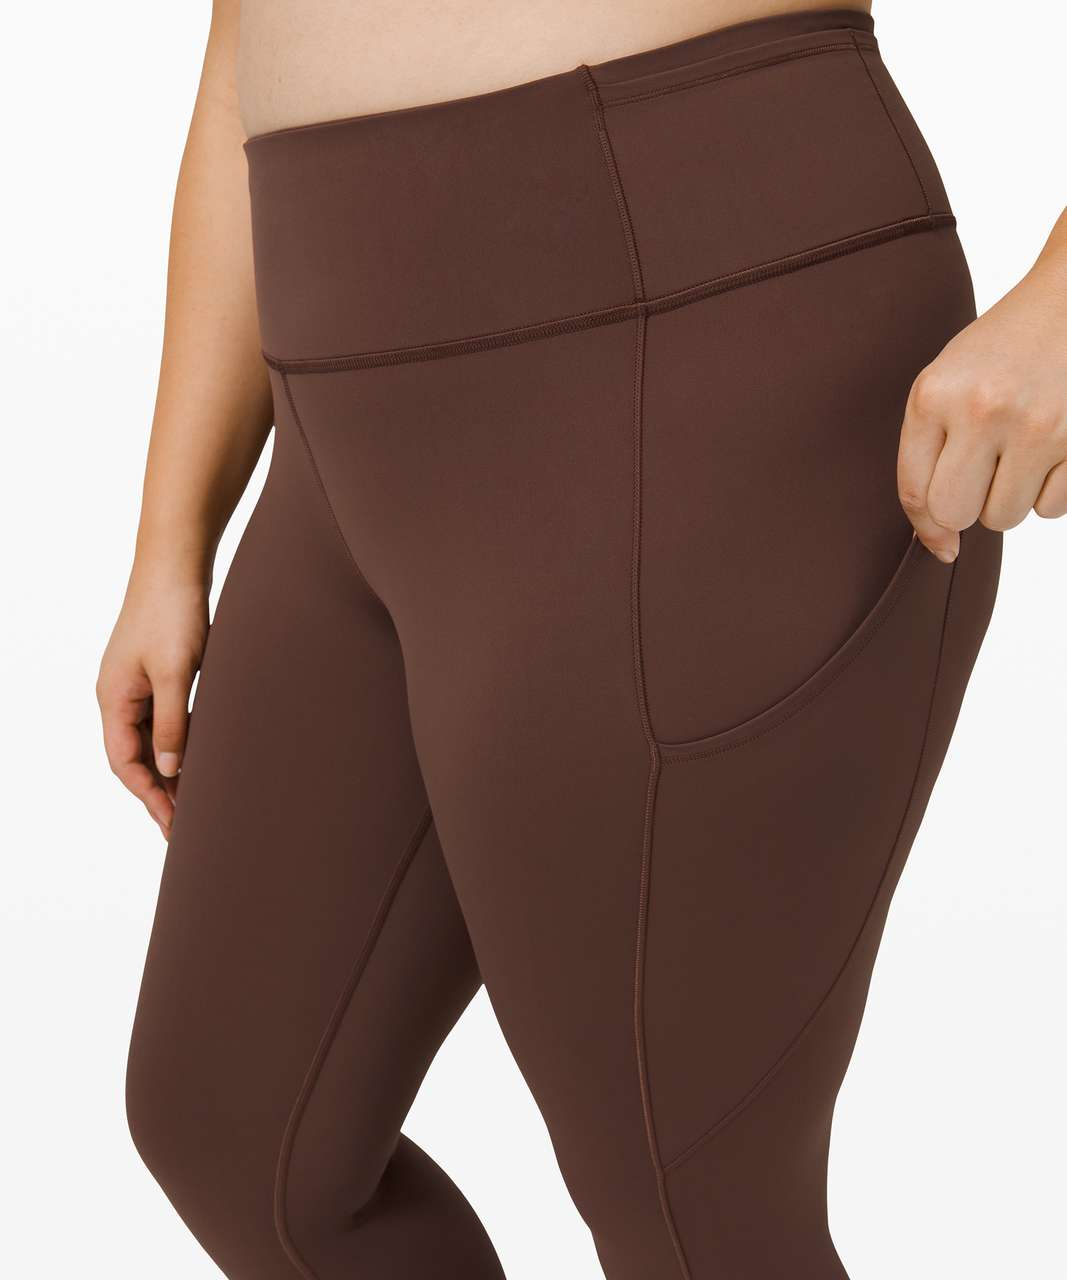 "Lululemon Fast and Free Tight II 25"" *Non-Reflective Nulux - Brown Earth"